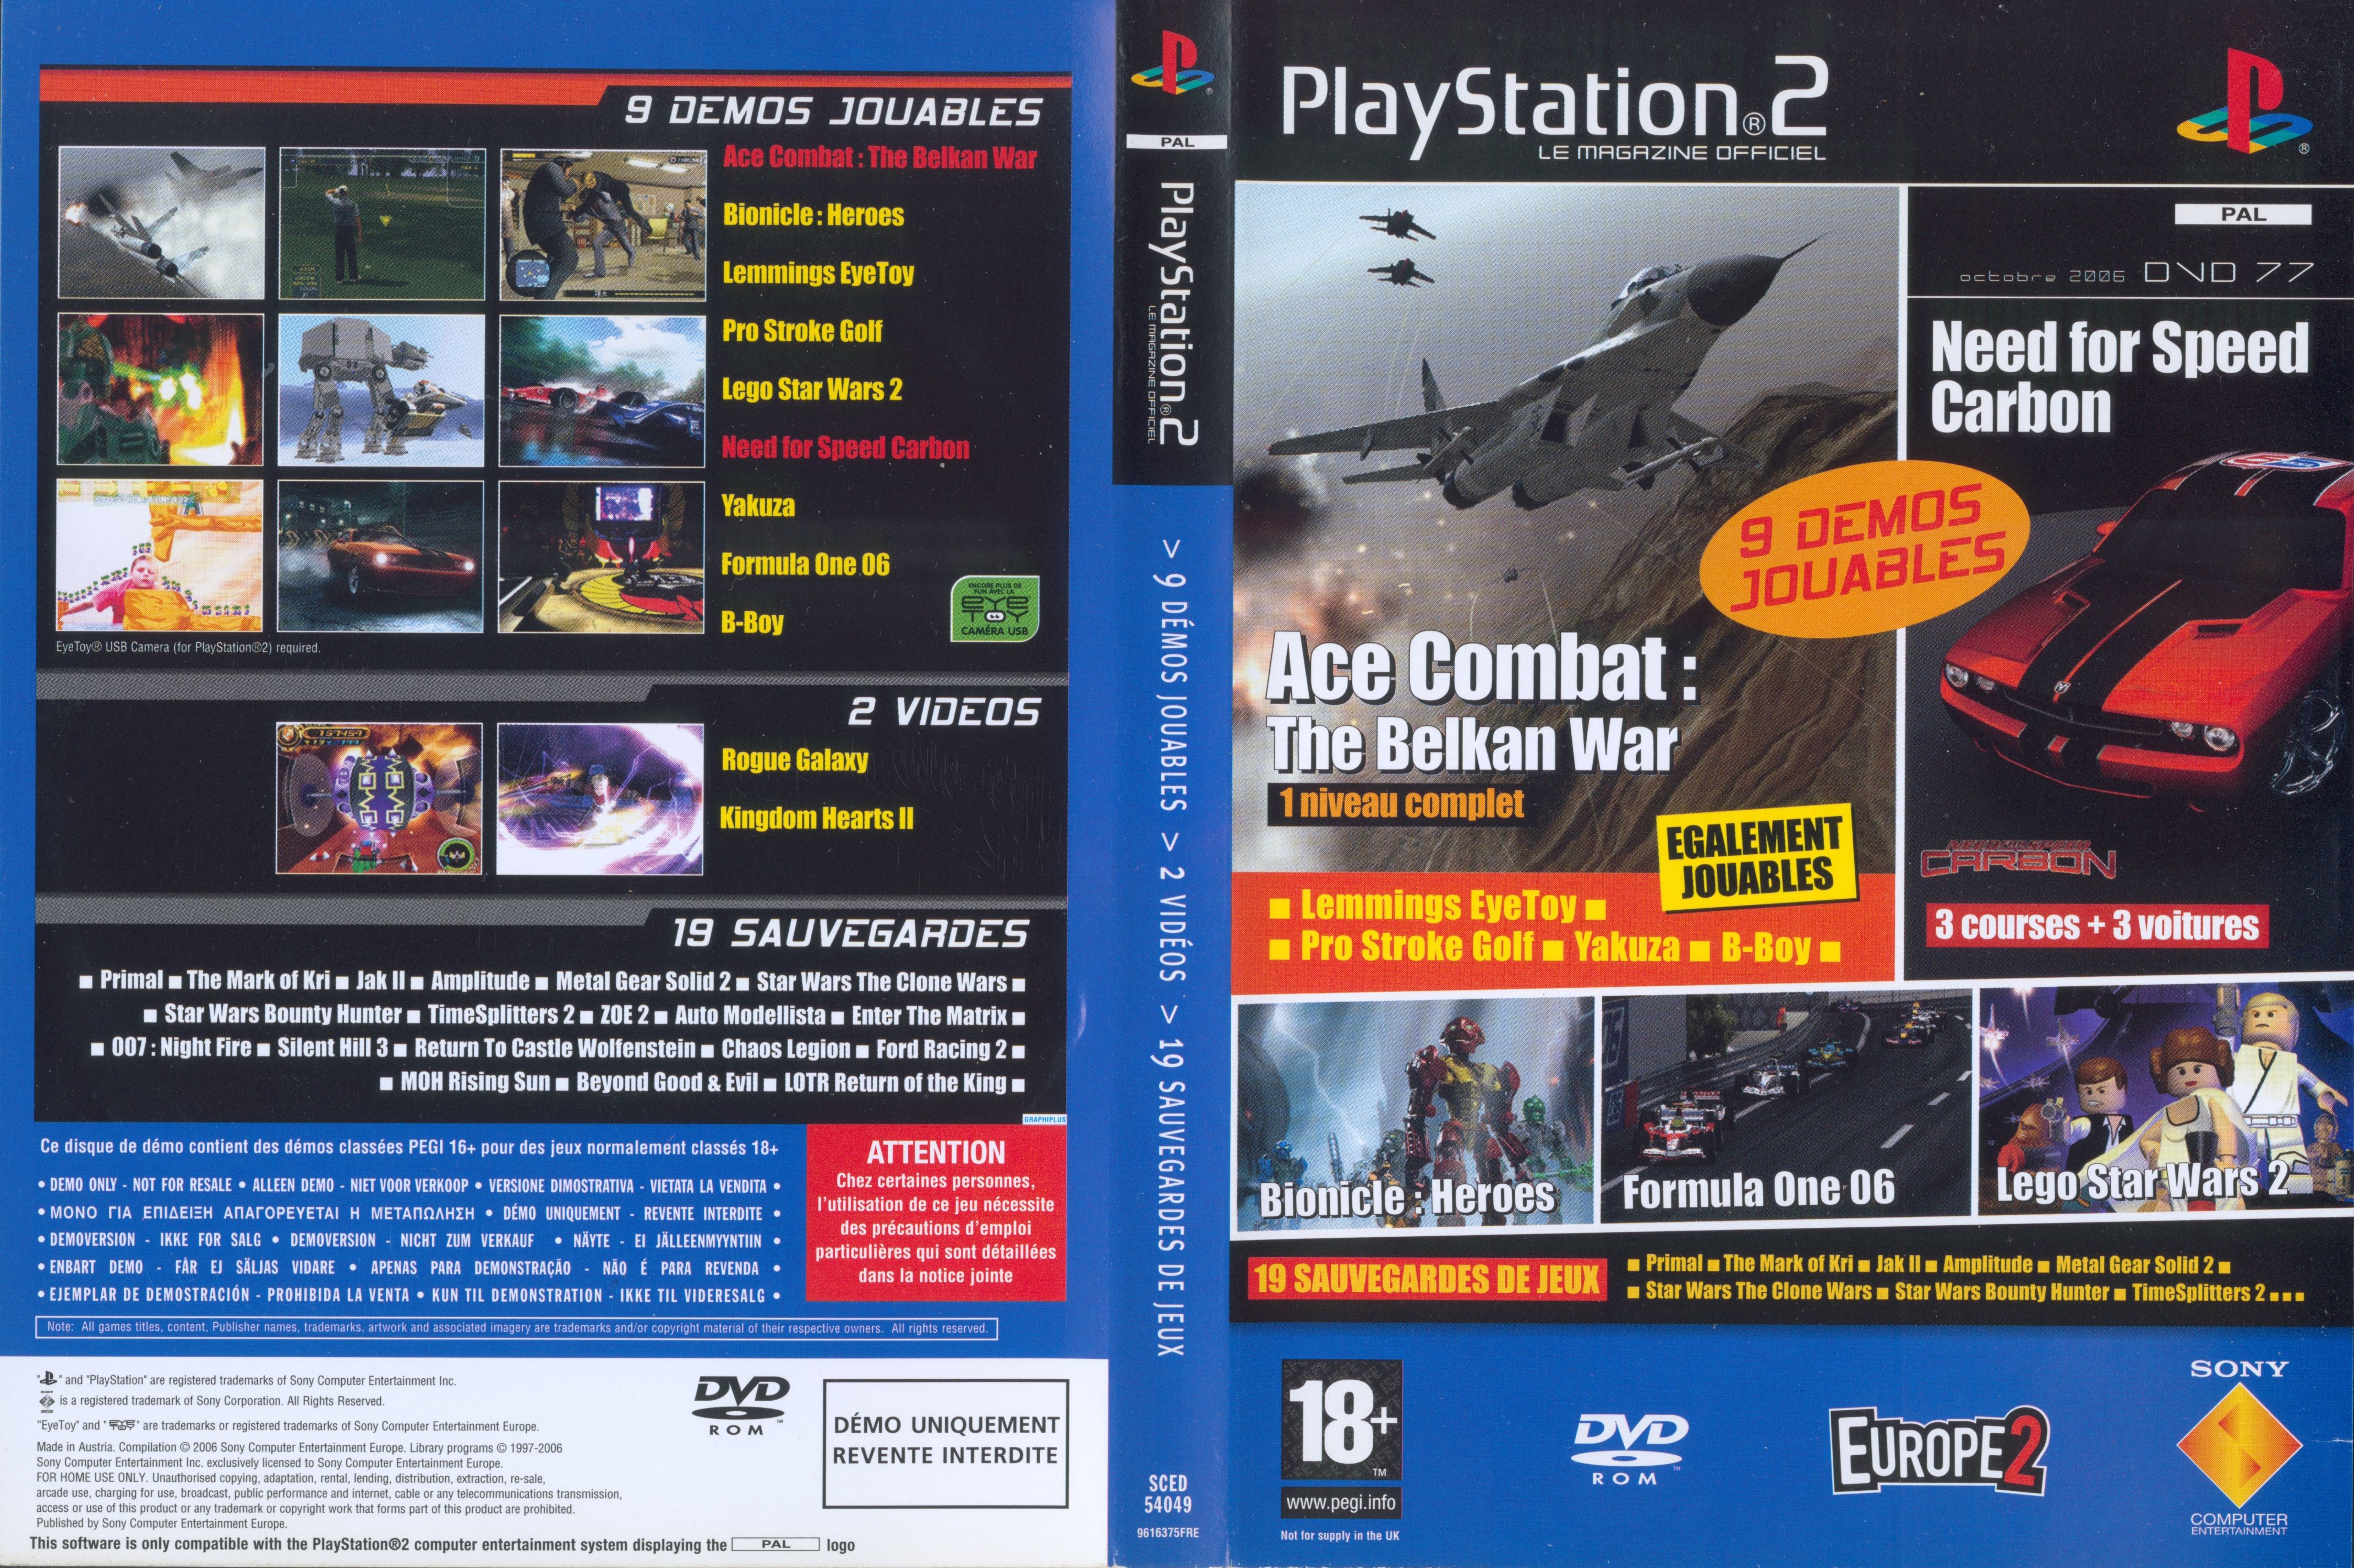 Official PlayStation 2 Magazine Demo 77 [SCED-54049] - PSX